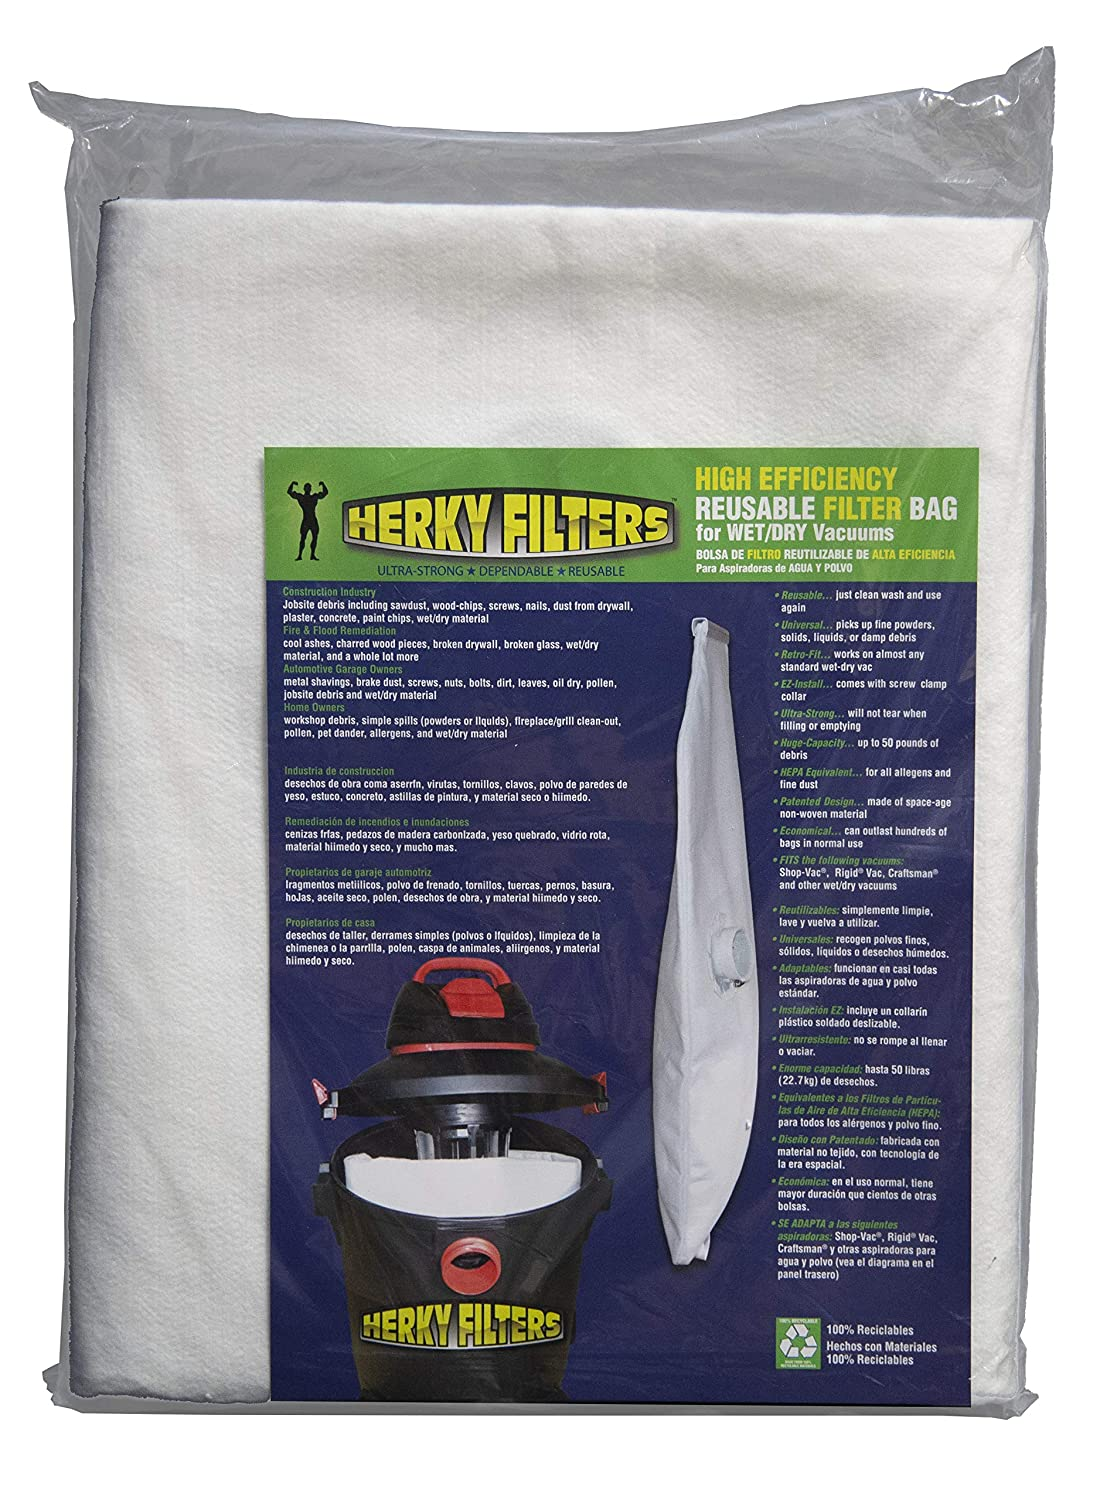 Medium Reusable Filter Bag for Wet/dry Vacuums